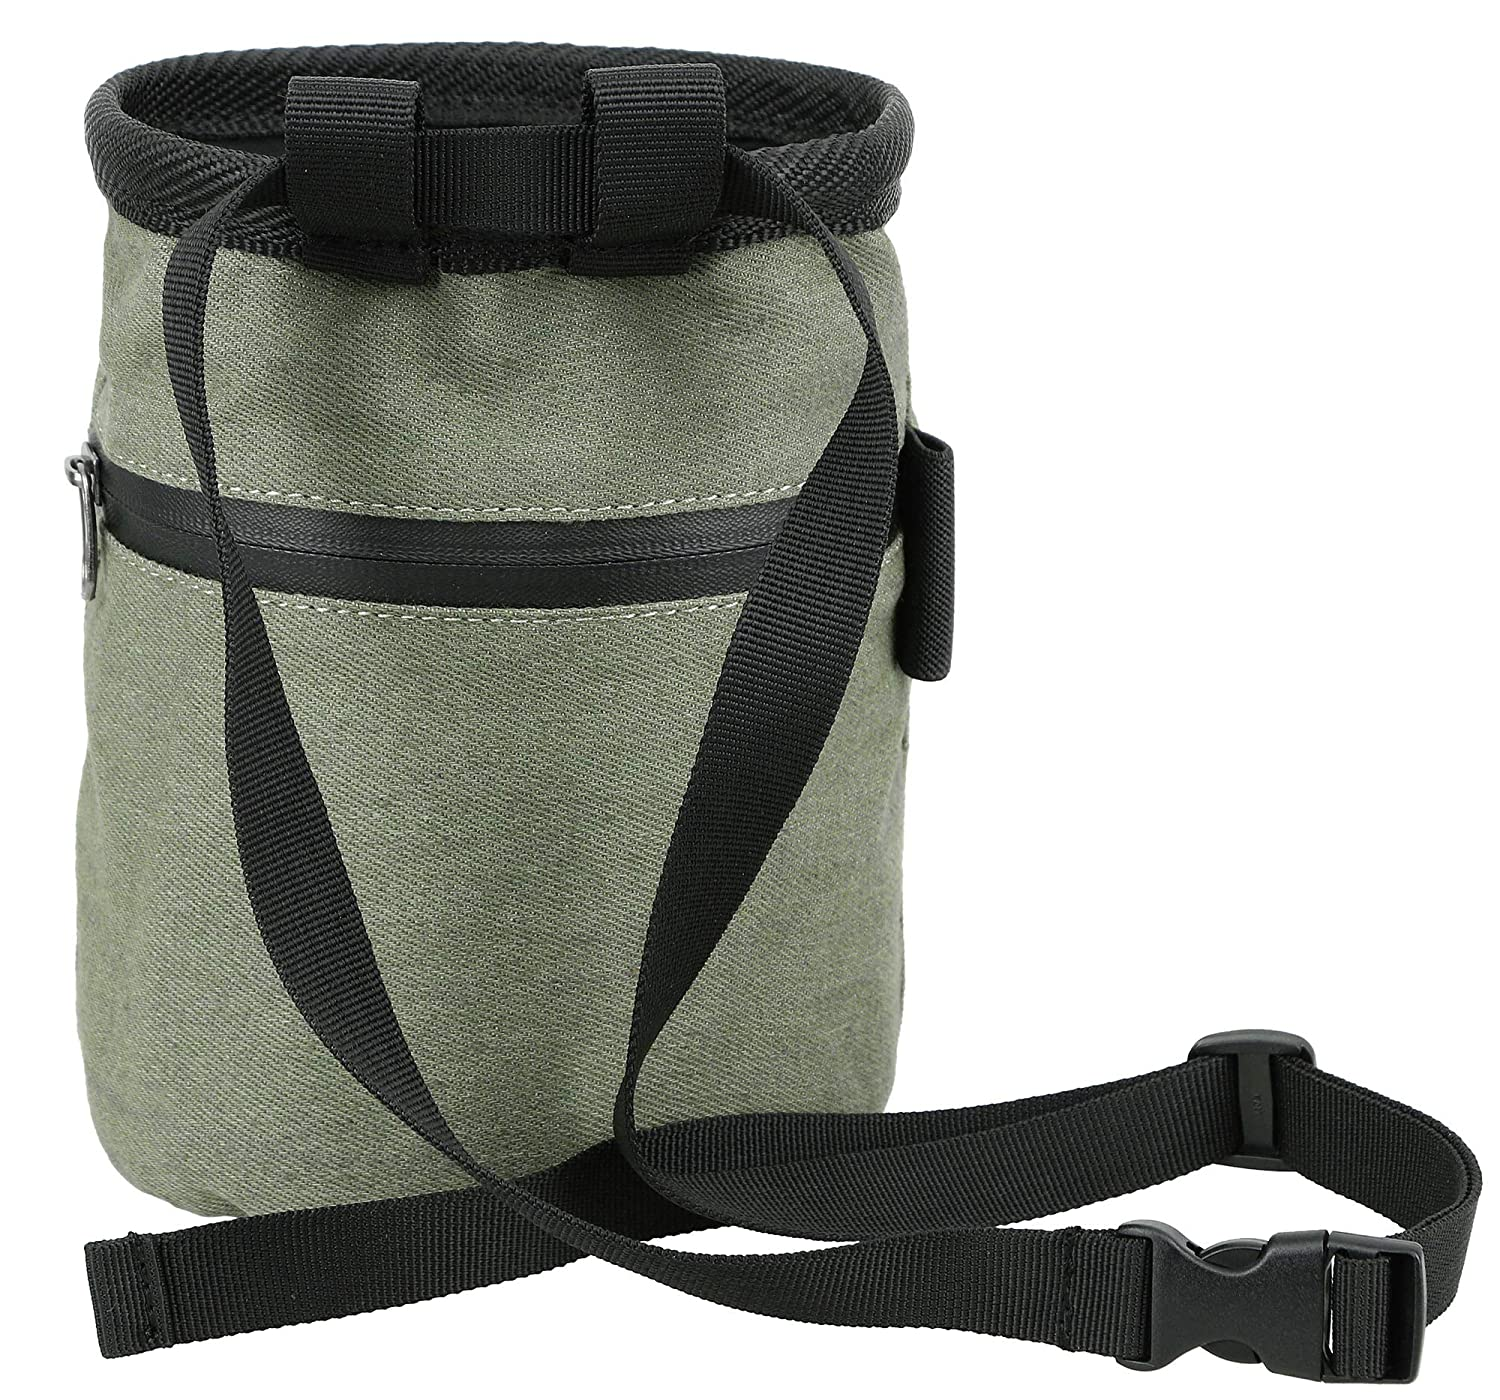 Crossfit Bouldering Gym Lifting FURST Denim Chalk Bag with Zippered Pocket and Brush Loop for Rock Climbing